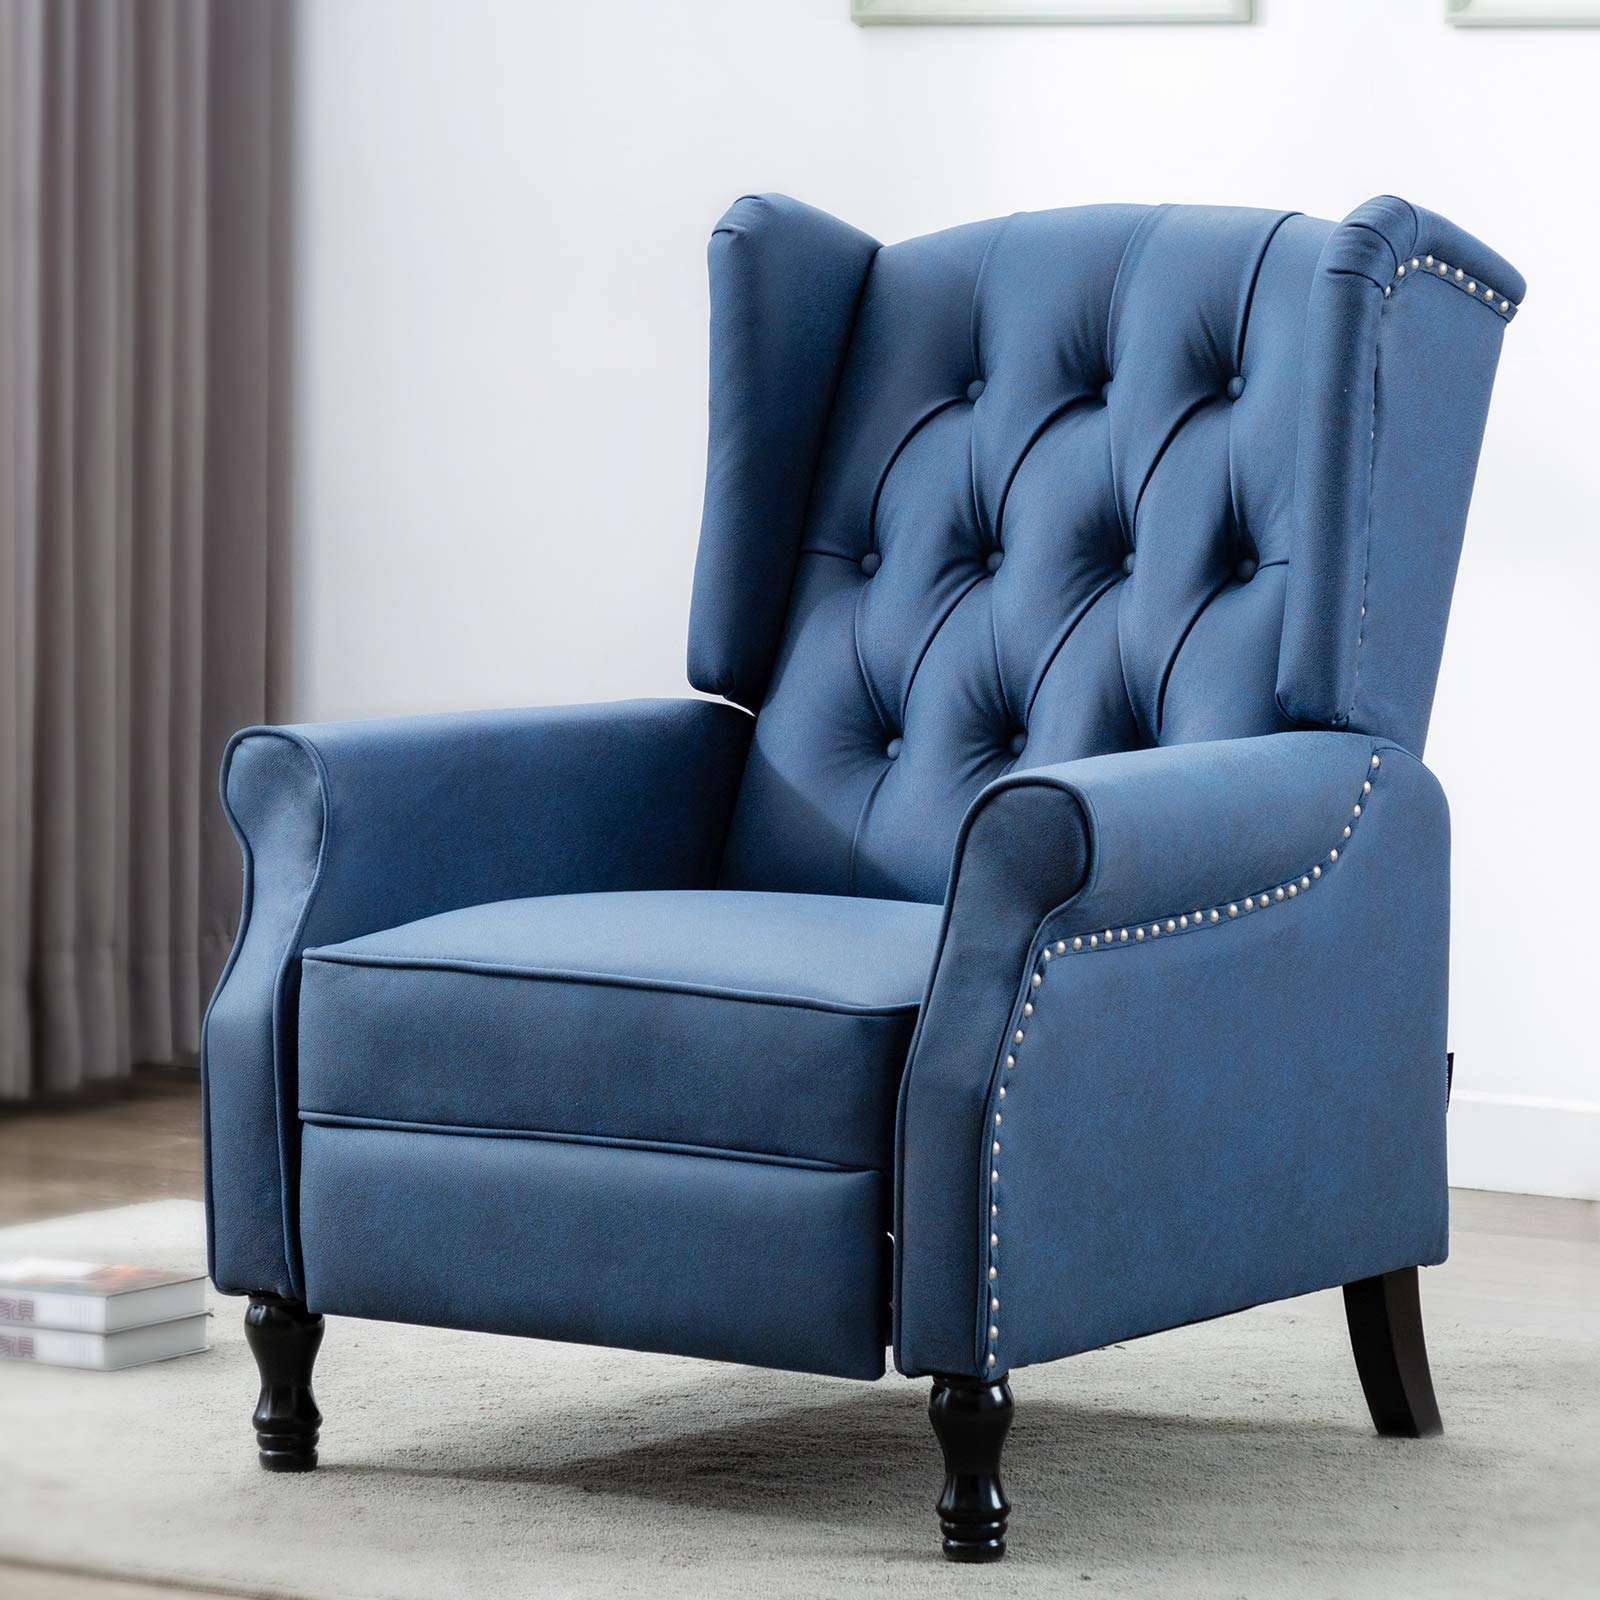 Artechworks Tufted Push Back Arm Chair Recliner Single Reclining for Adjustable Club Chair Home Padded Seating Living Room Lounge Modern Sofa, Dark Blue, Tech Cloth(Leathaire)